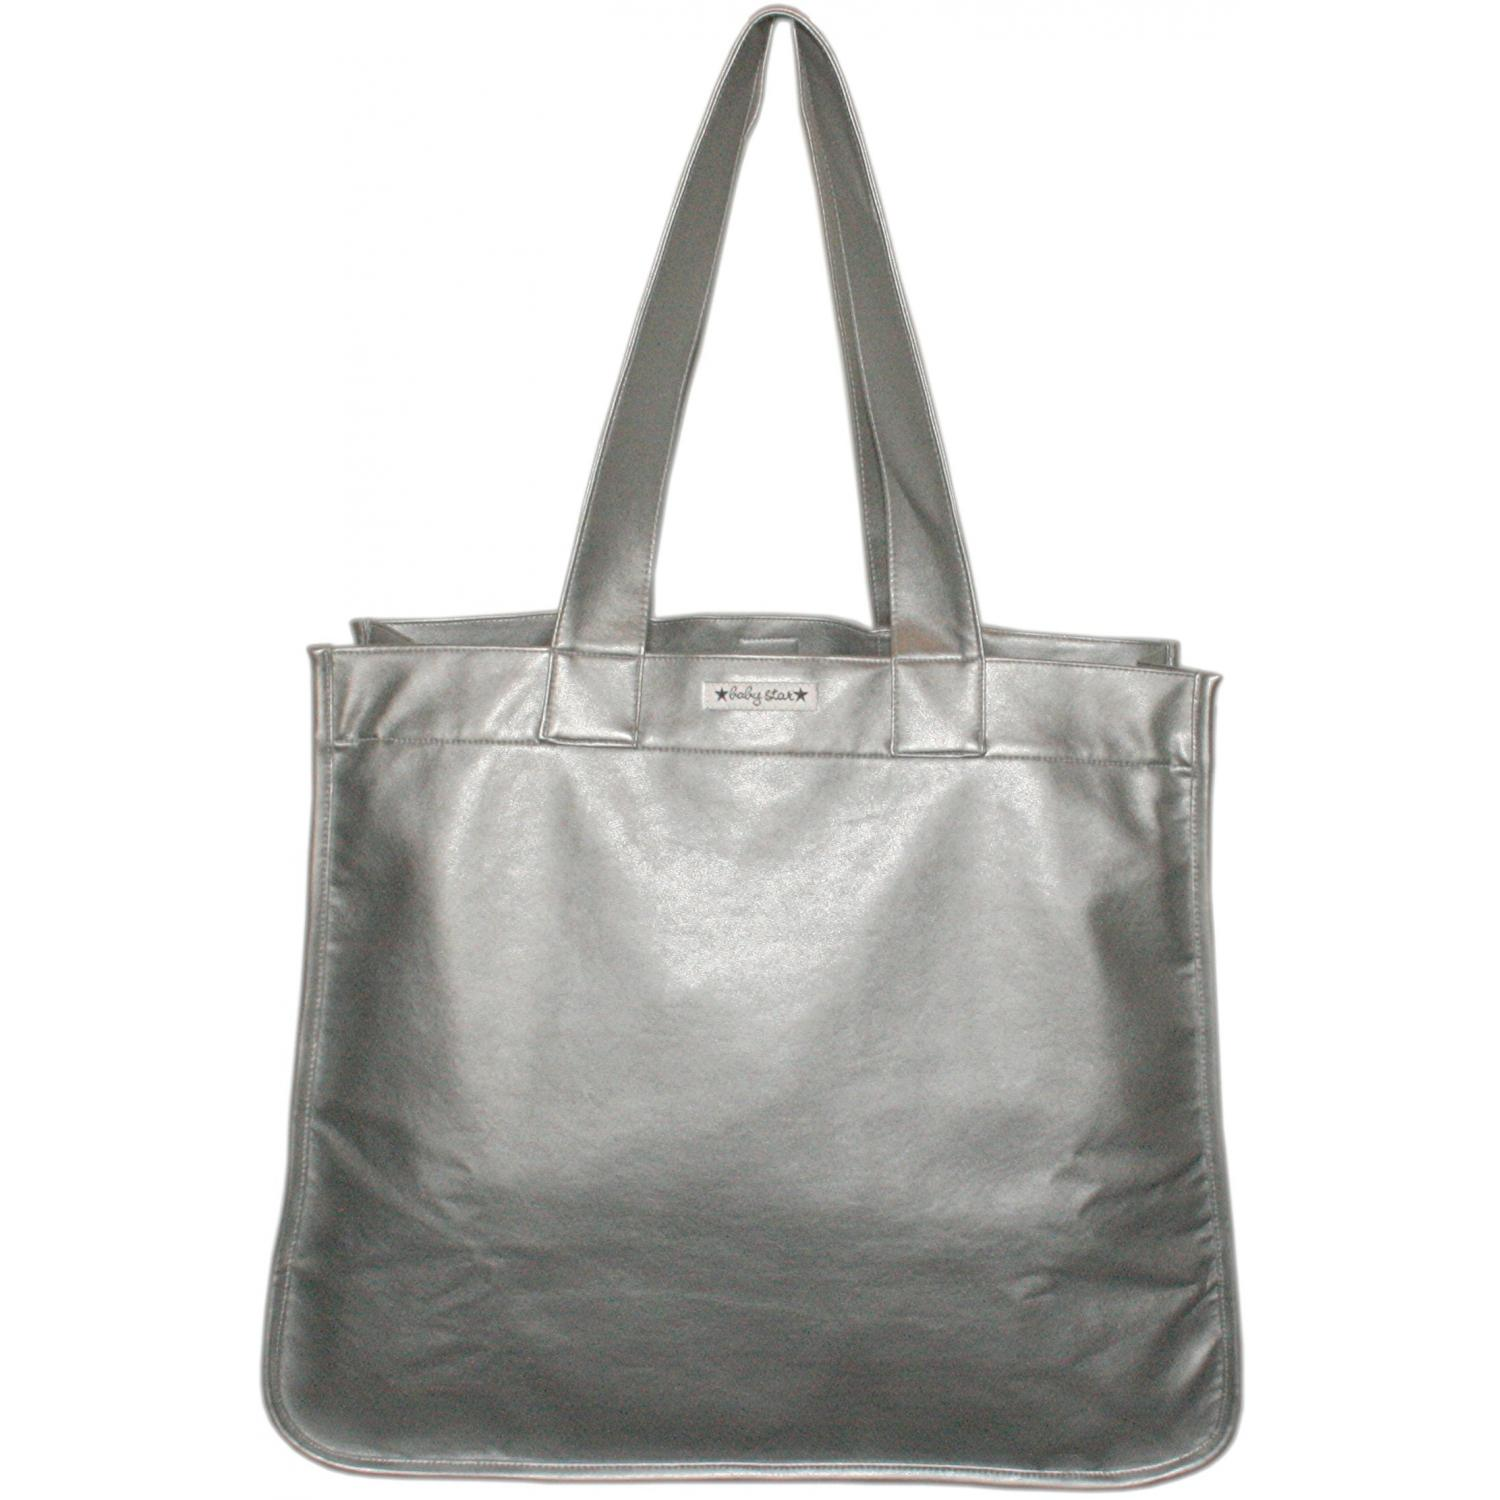 Baby Star Rock The Tote Metallic Diaper Bag - Silver.